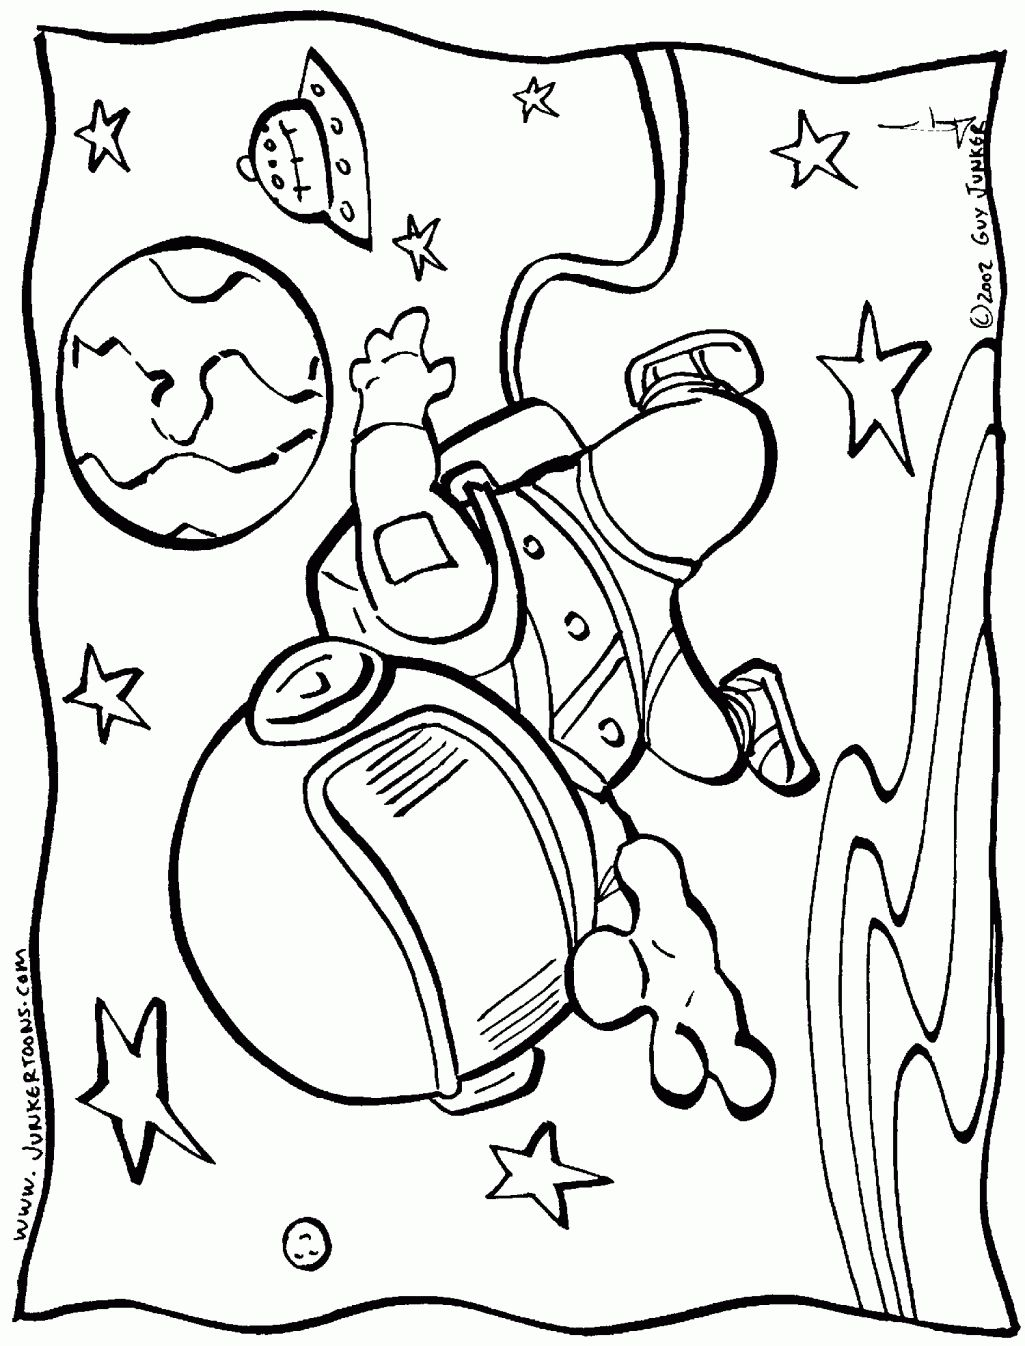 Chemistry Coloring Page A Free Science Coloring Printable